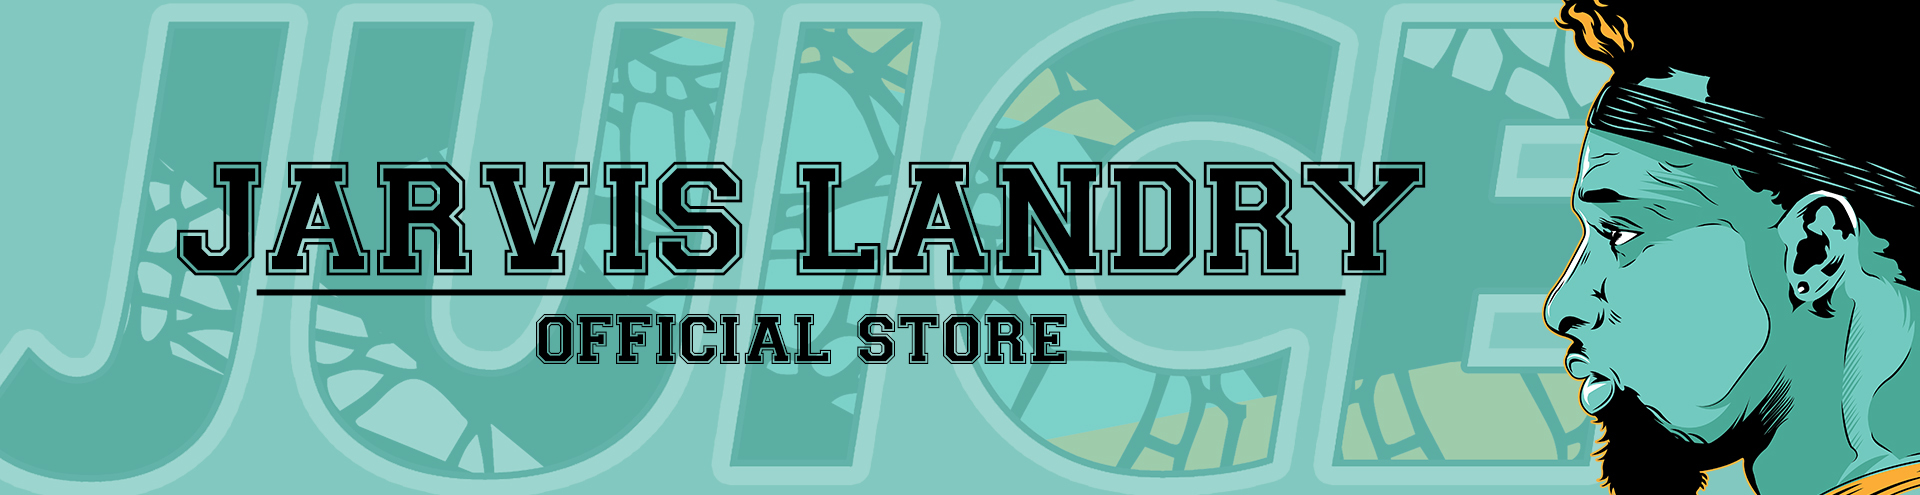 Official Jarvis Landry Store Store